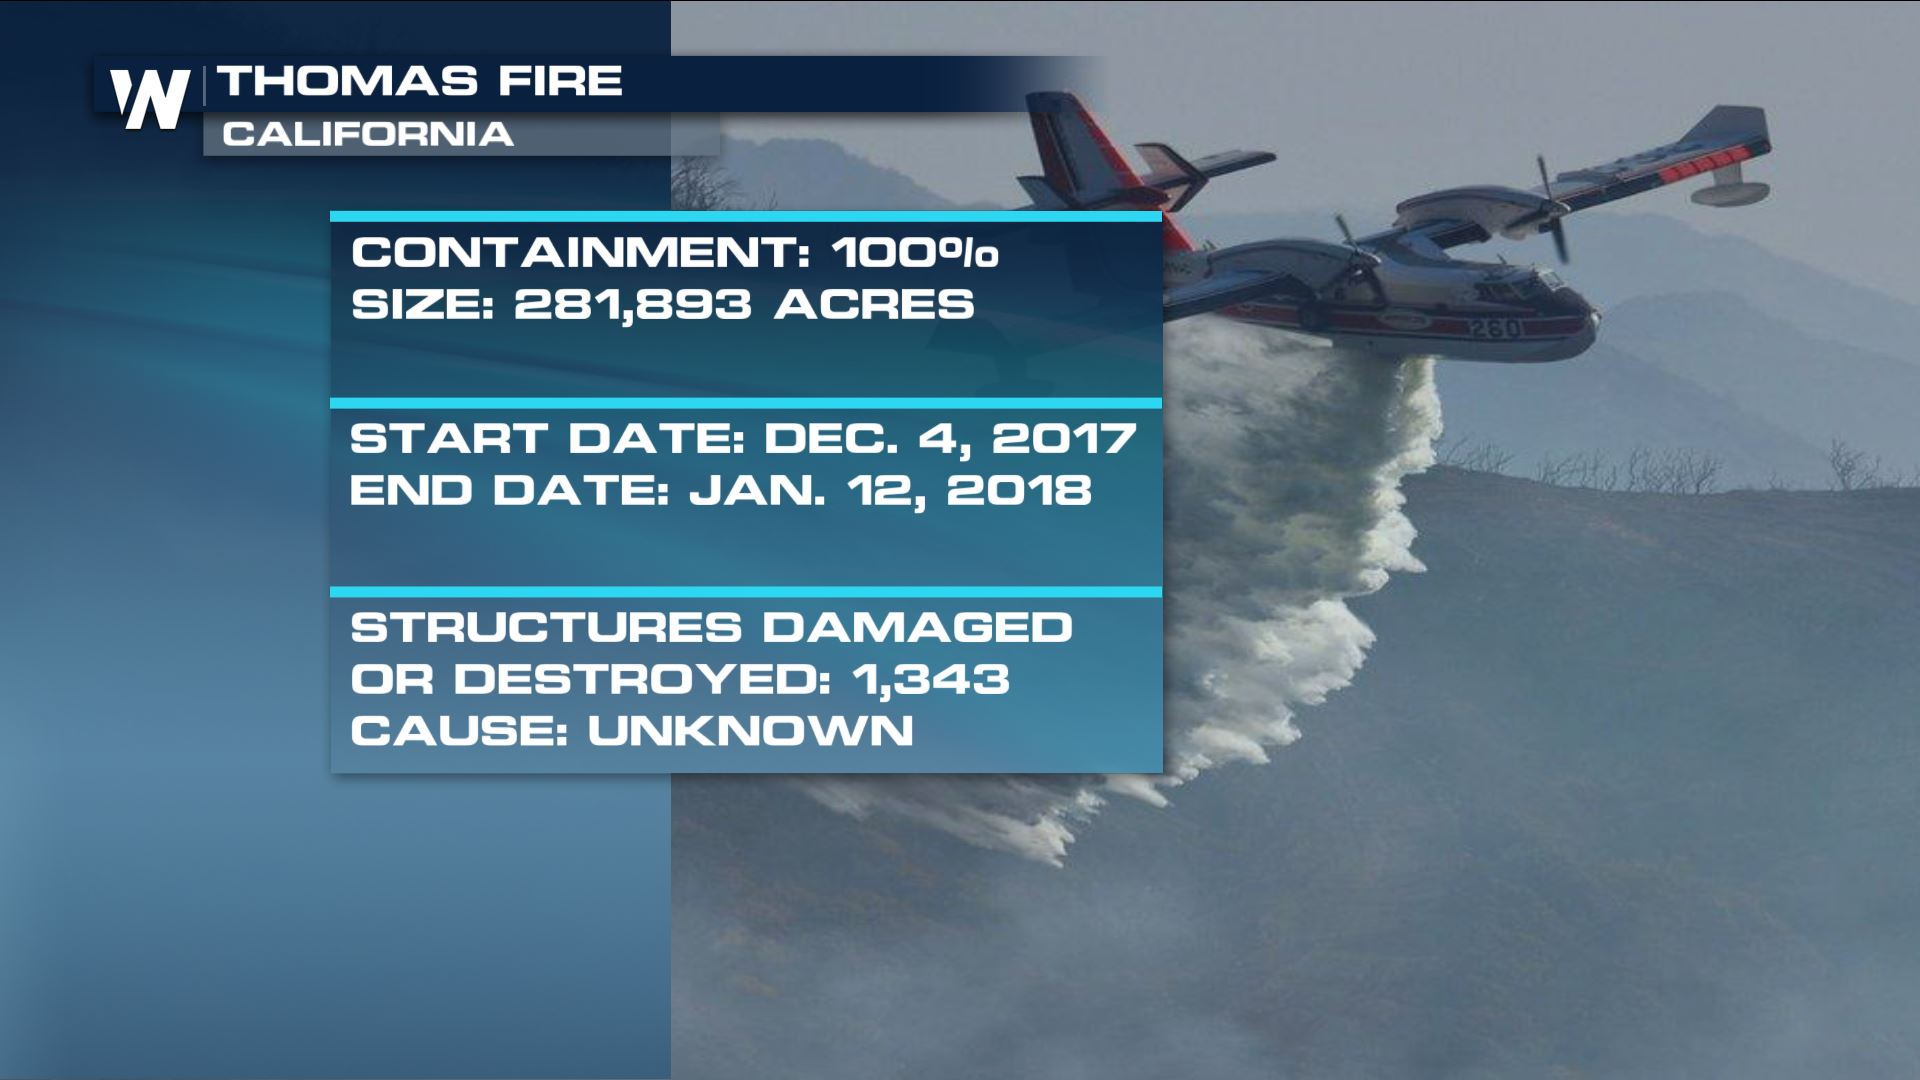 Thomas Fire in California is Officially Out